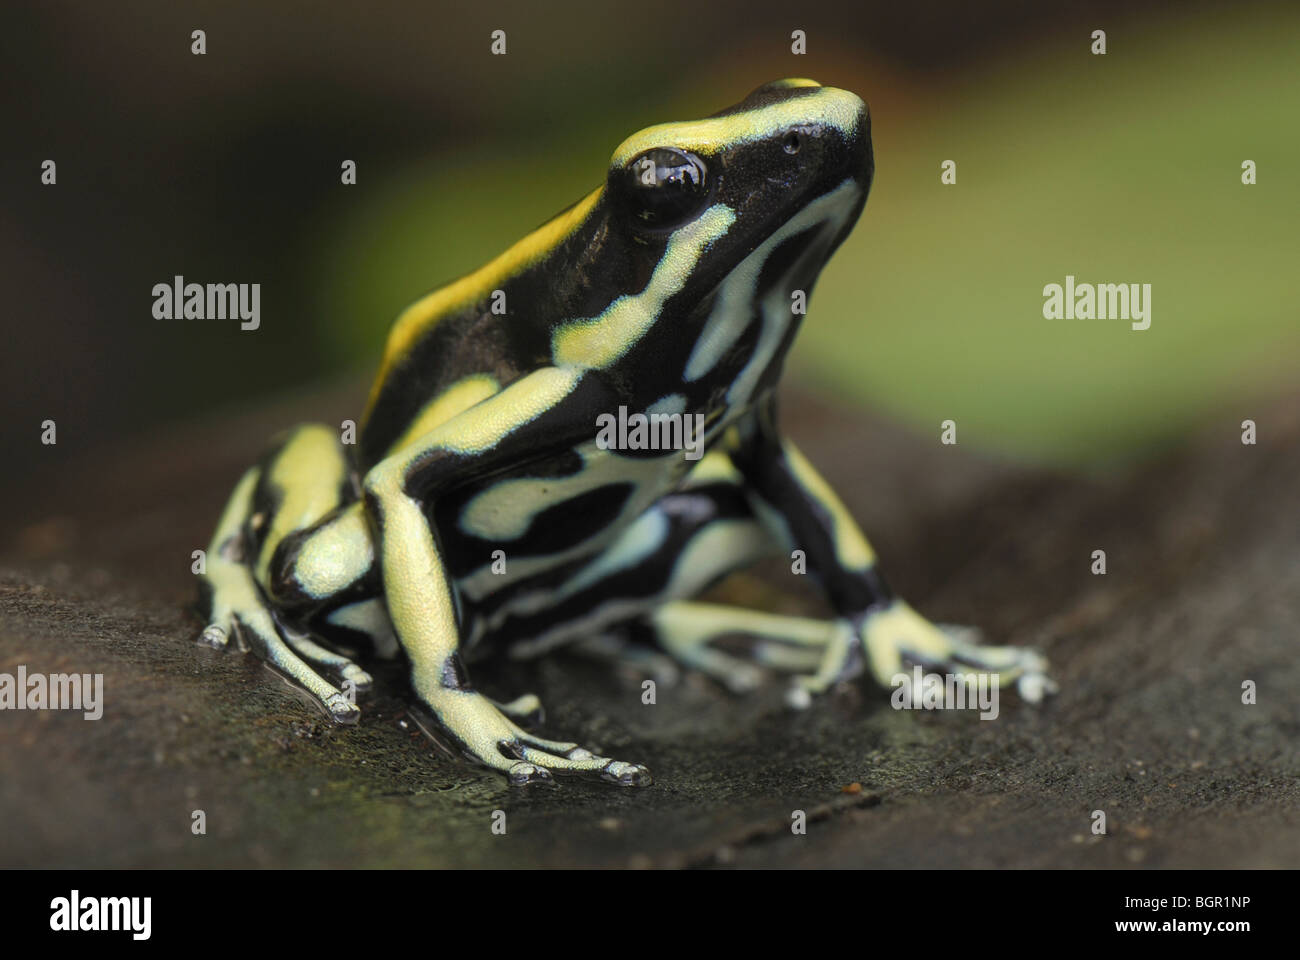 Dyeing Poison Frog (Dendrobates tinctorius), adult, Cauca, Colombia - Stock Image